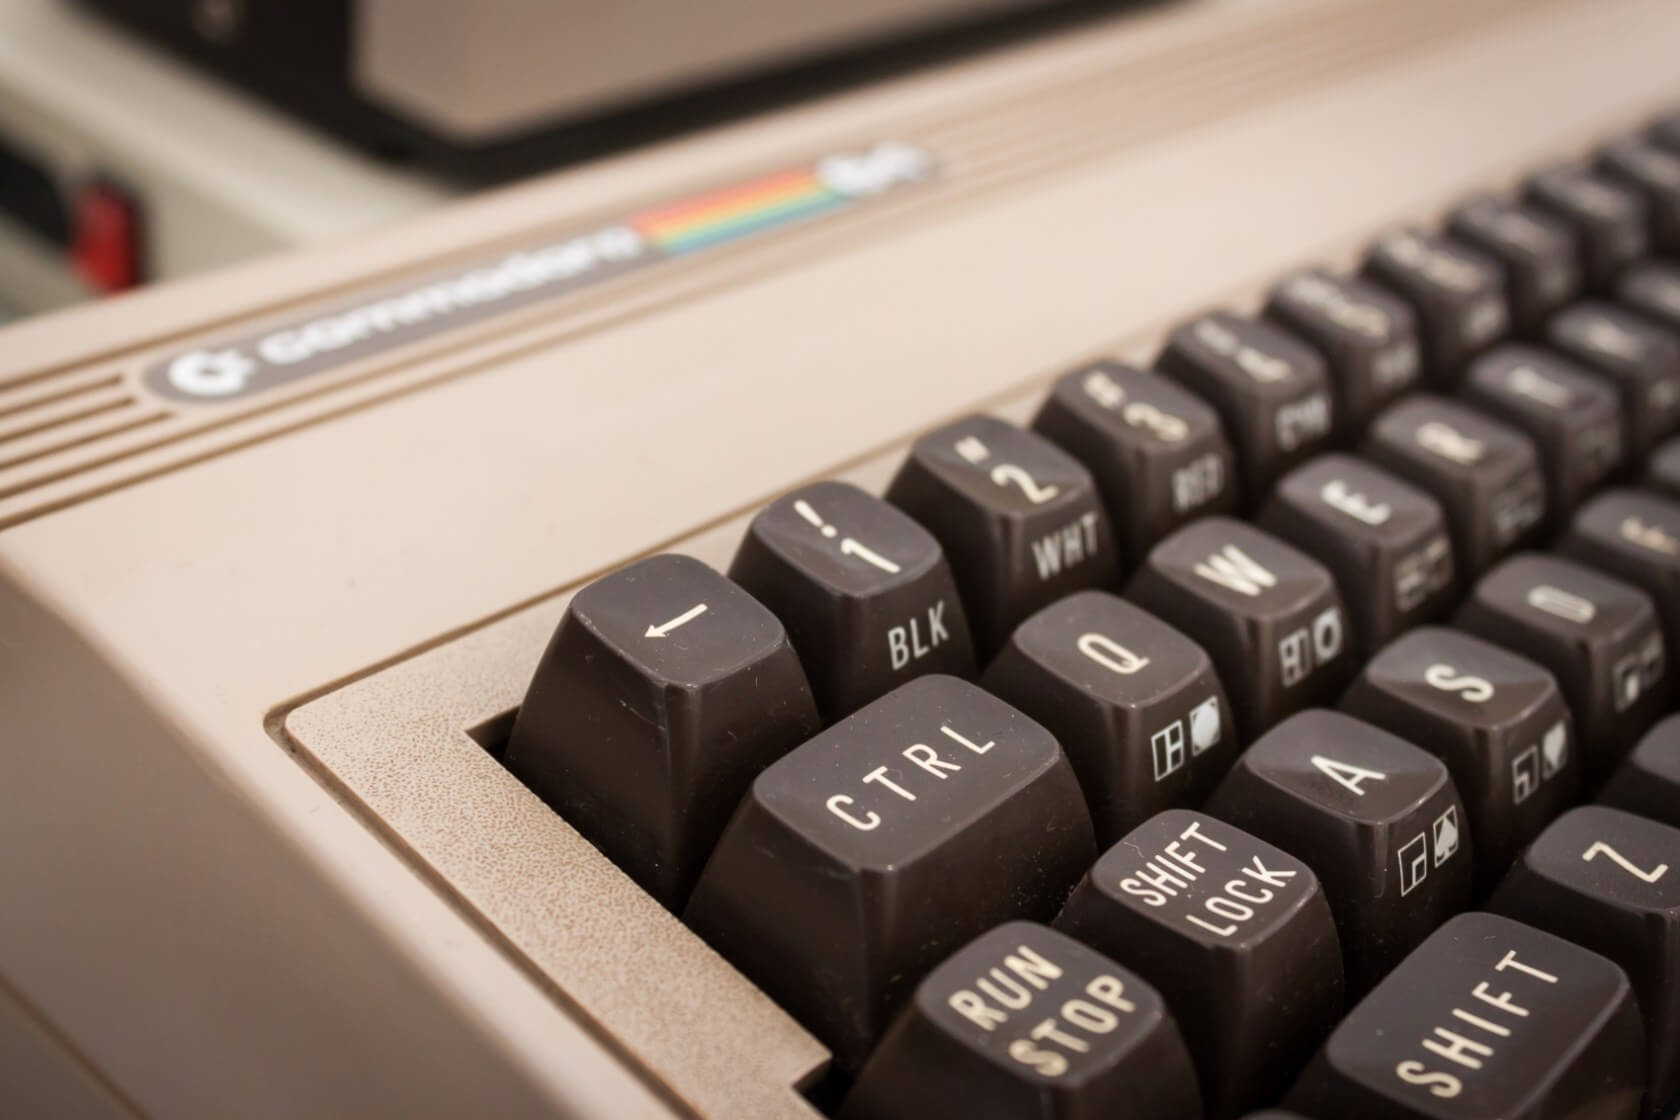 The classic Commodore 64 is getting a full sized re-release this December